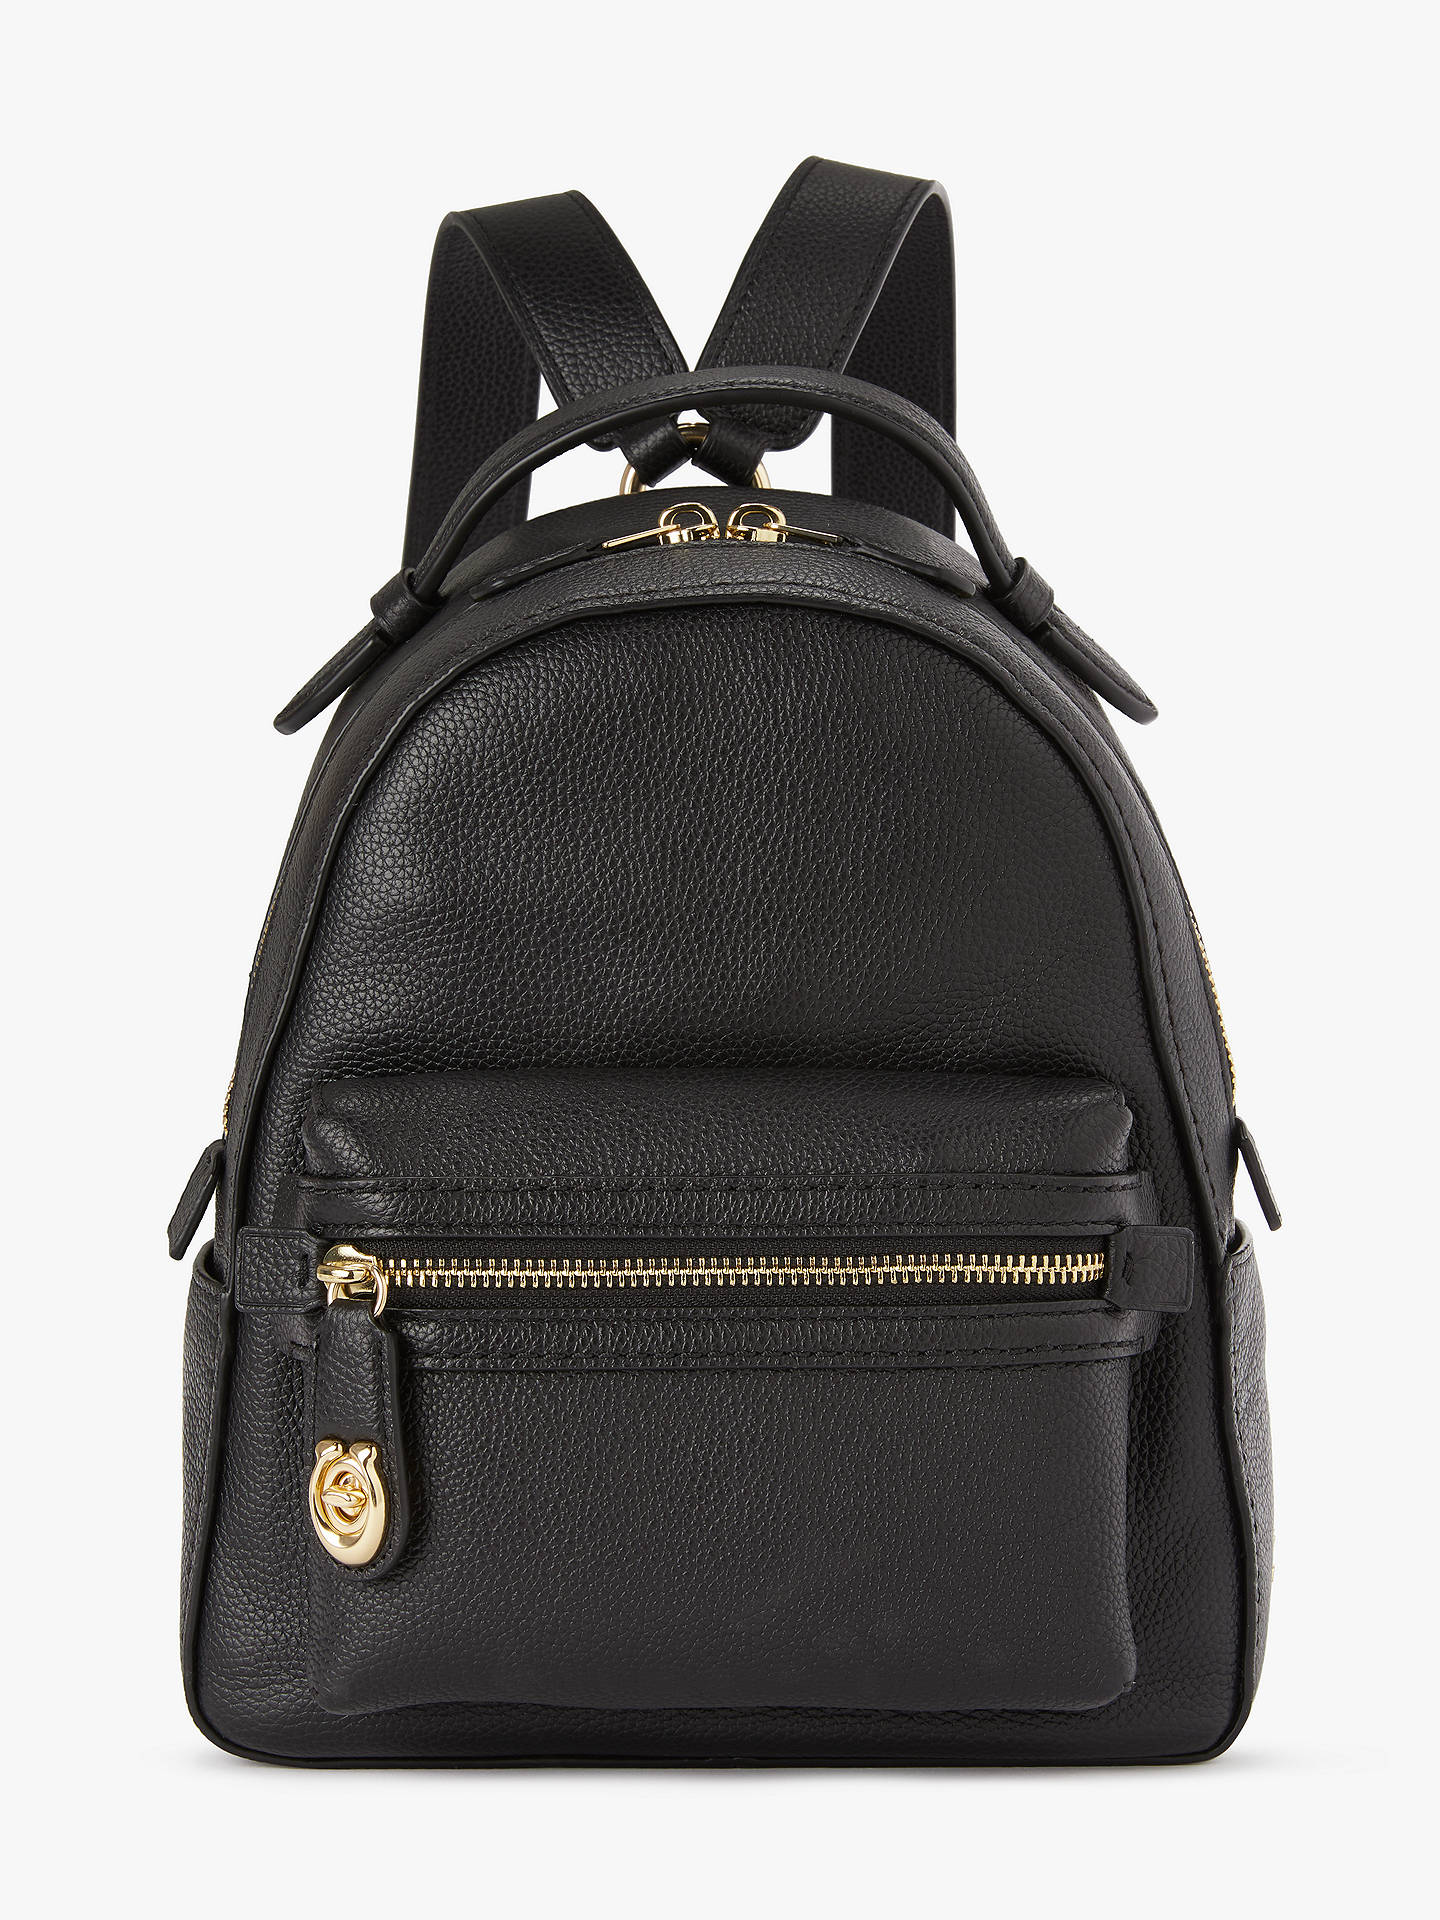 7bbc8f3ecaf4a Buy Coach Campus 23 Pebble Leather Backpack